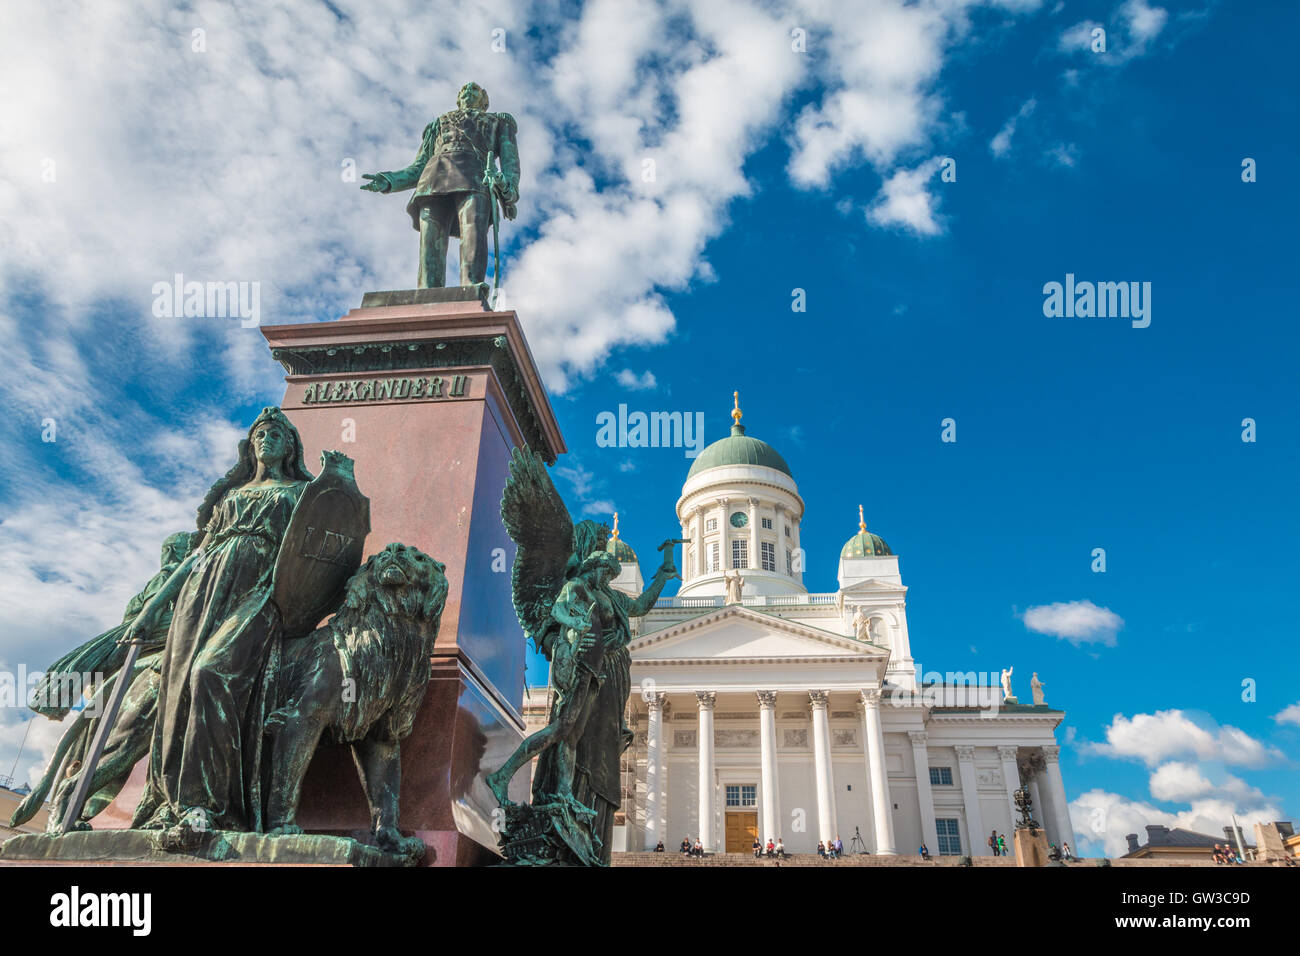 Helsinki Cathedral in Finland - Stock Image